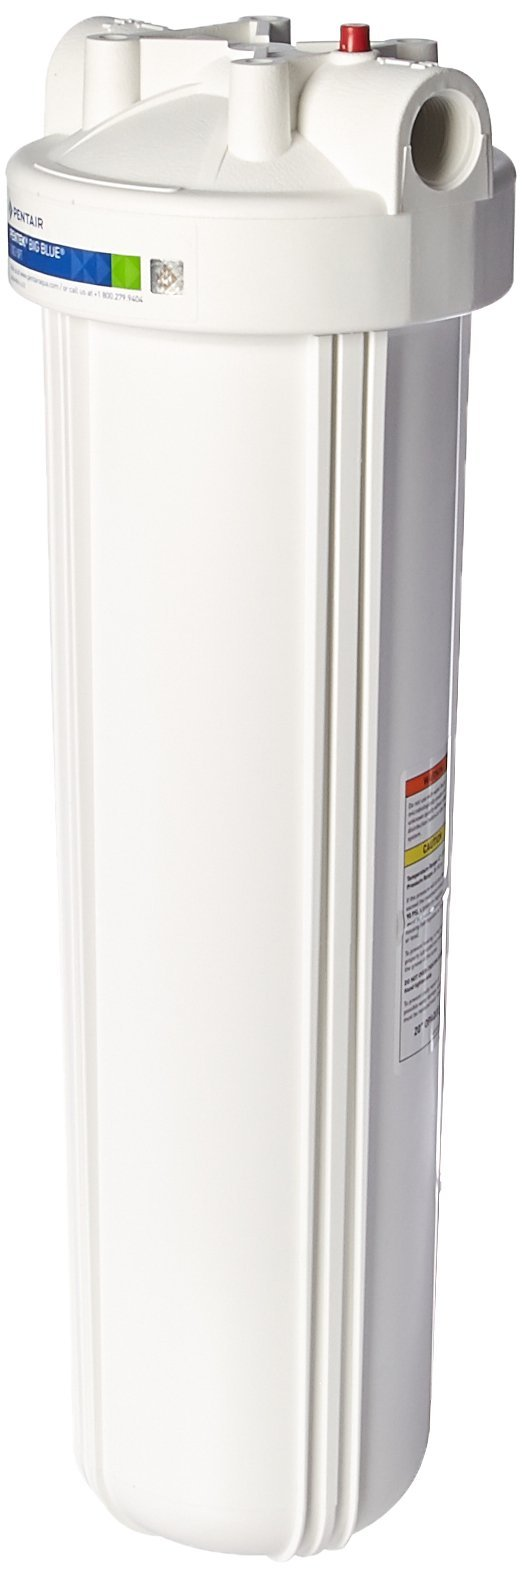 Big White 20-inch x 4.5-inch Filter Housing 1 Inch FPT - 166142 by Pentek